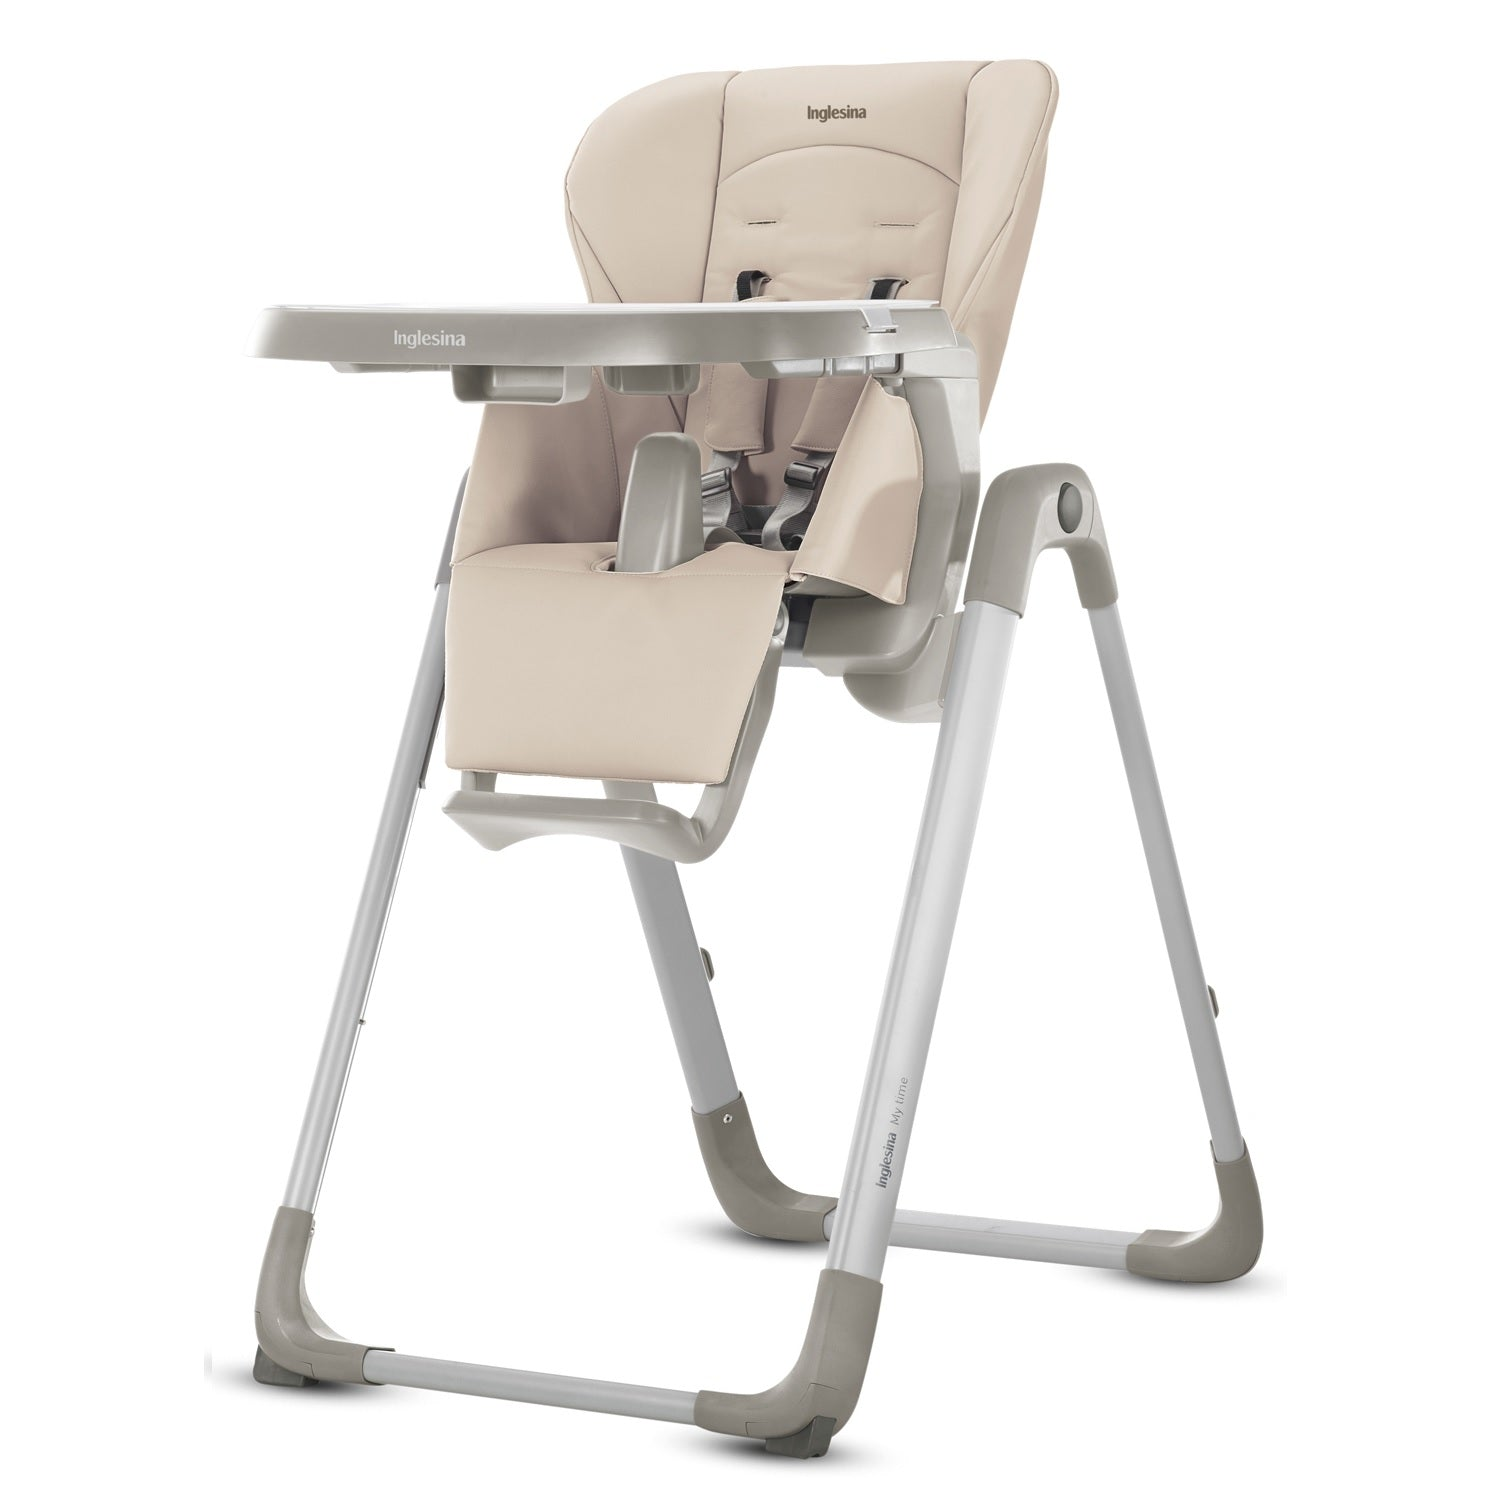 Awe Inspiring Inglesina Mytime High Chair Ibusinesslaw Wood Chair Design Ideas Ibusinesslaworg